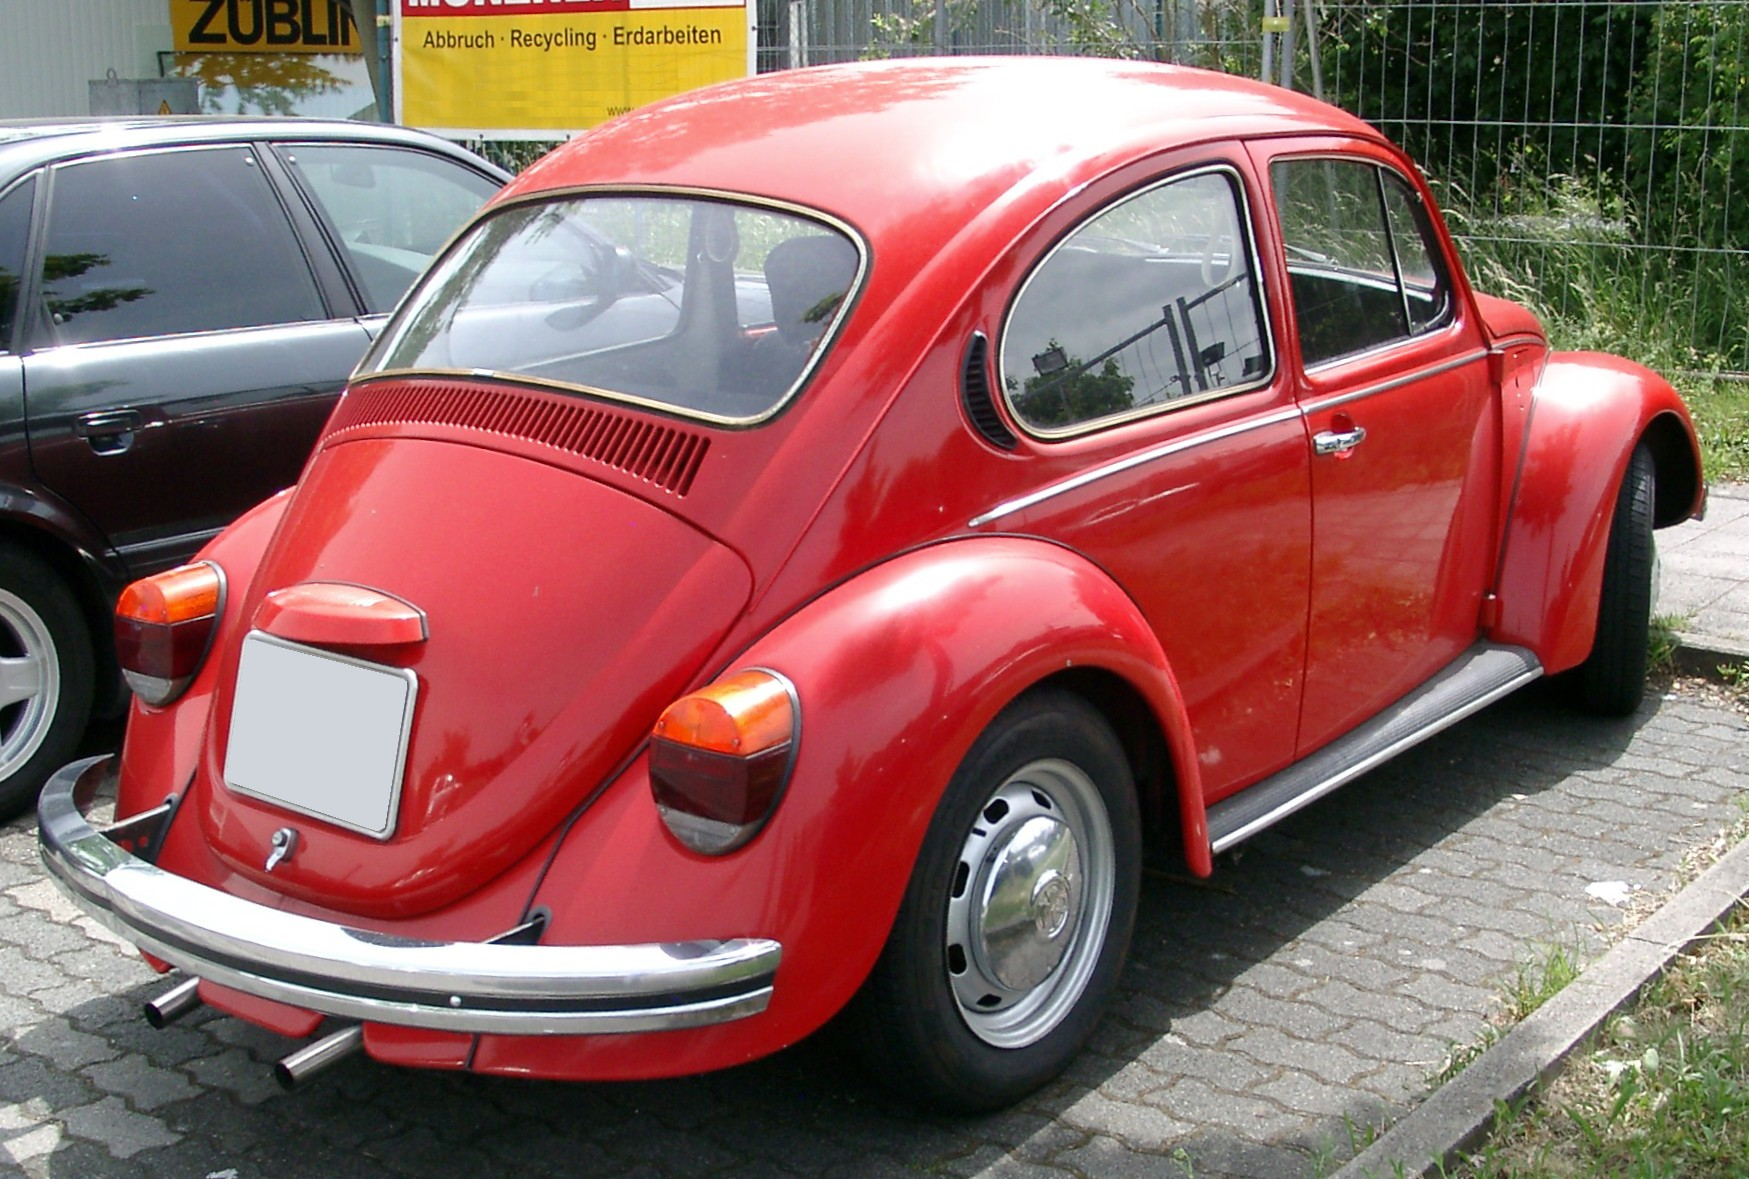 File:VW Kaefer 1303 rear 20080624.jpg